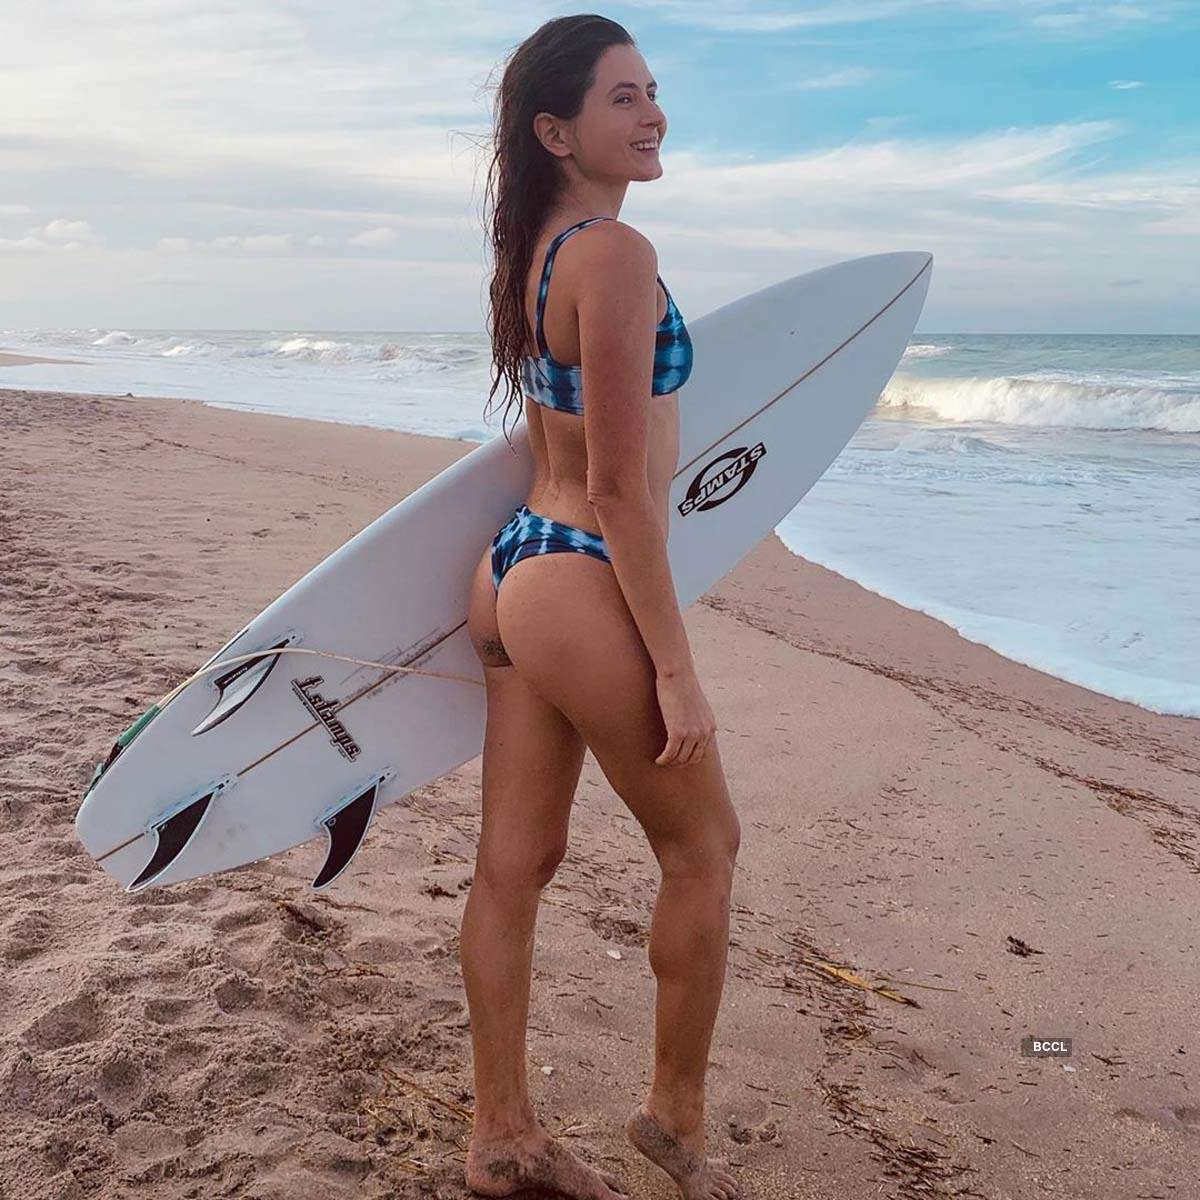 These gorgeous pictures of surfer Anastasia Ashley will make you want to hit the beach